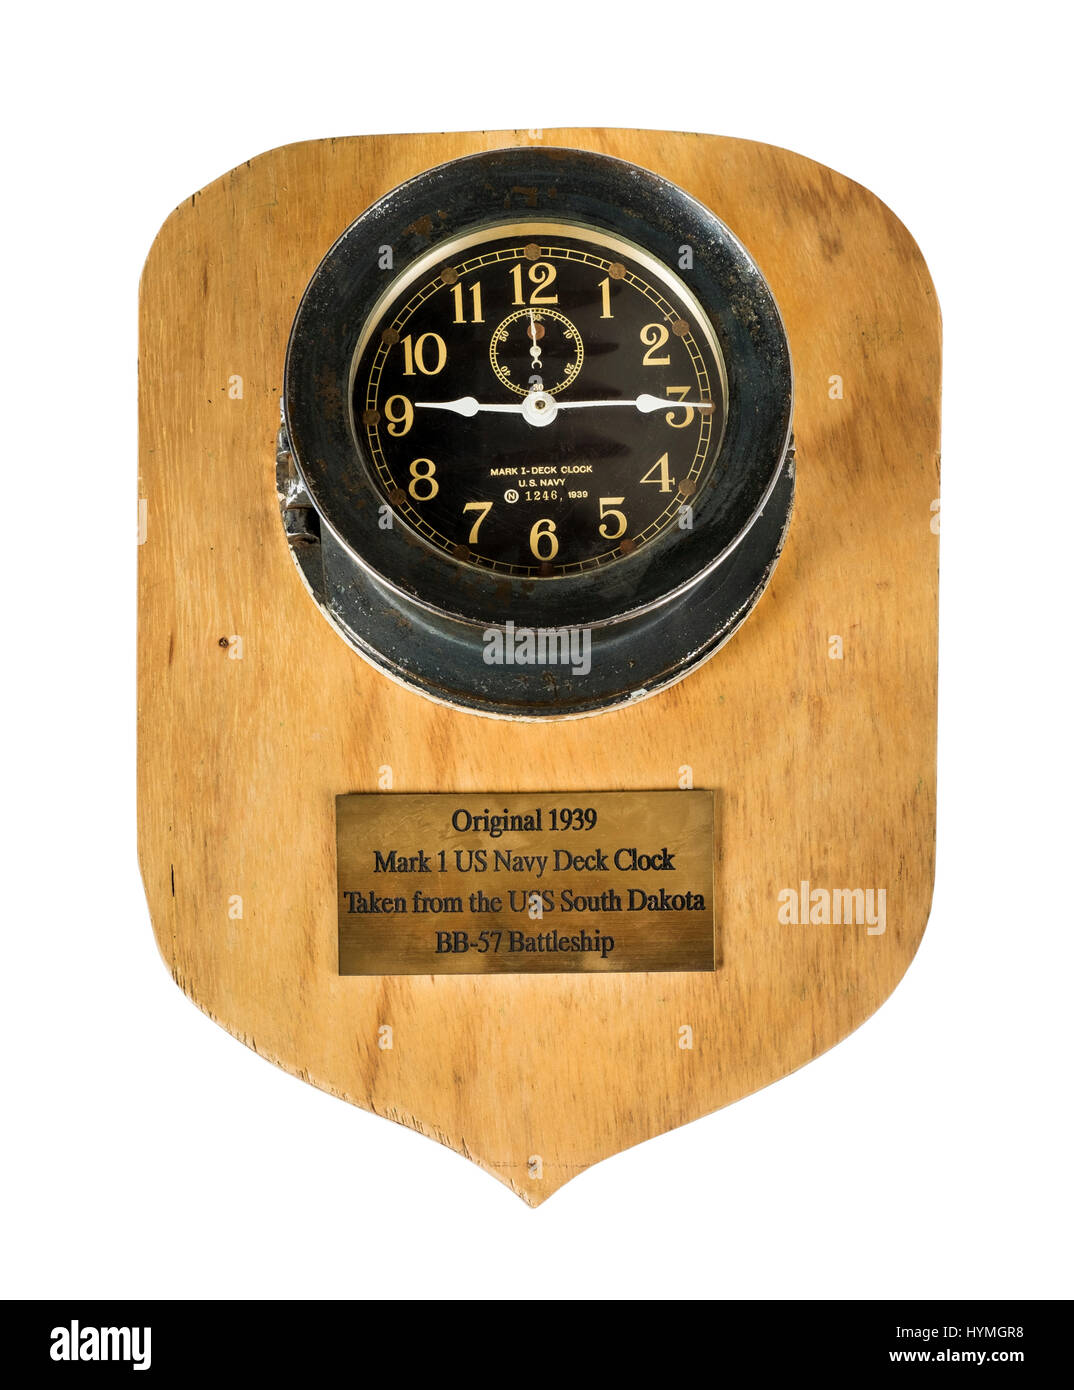 A WW2 Mark 1 US Navy Deck Clock by Seth Thomas, dated 1939, with engraved plaque stating it was taken from the USS - Stock Image